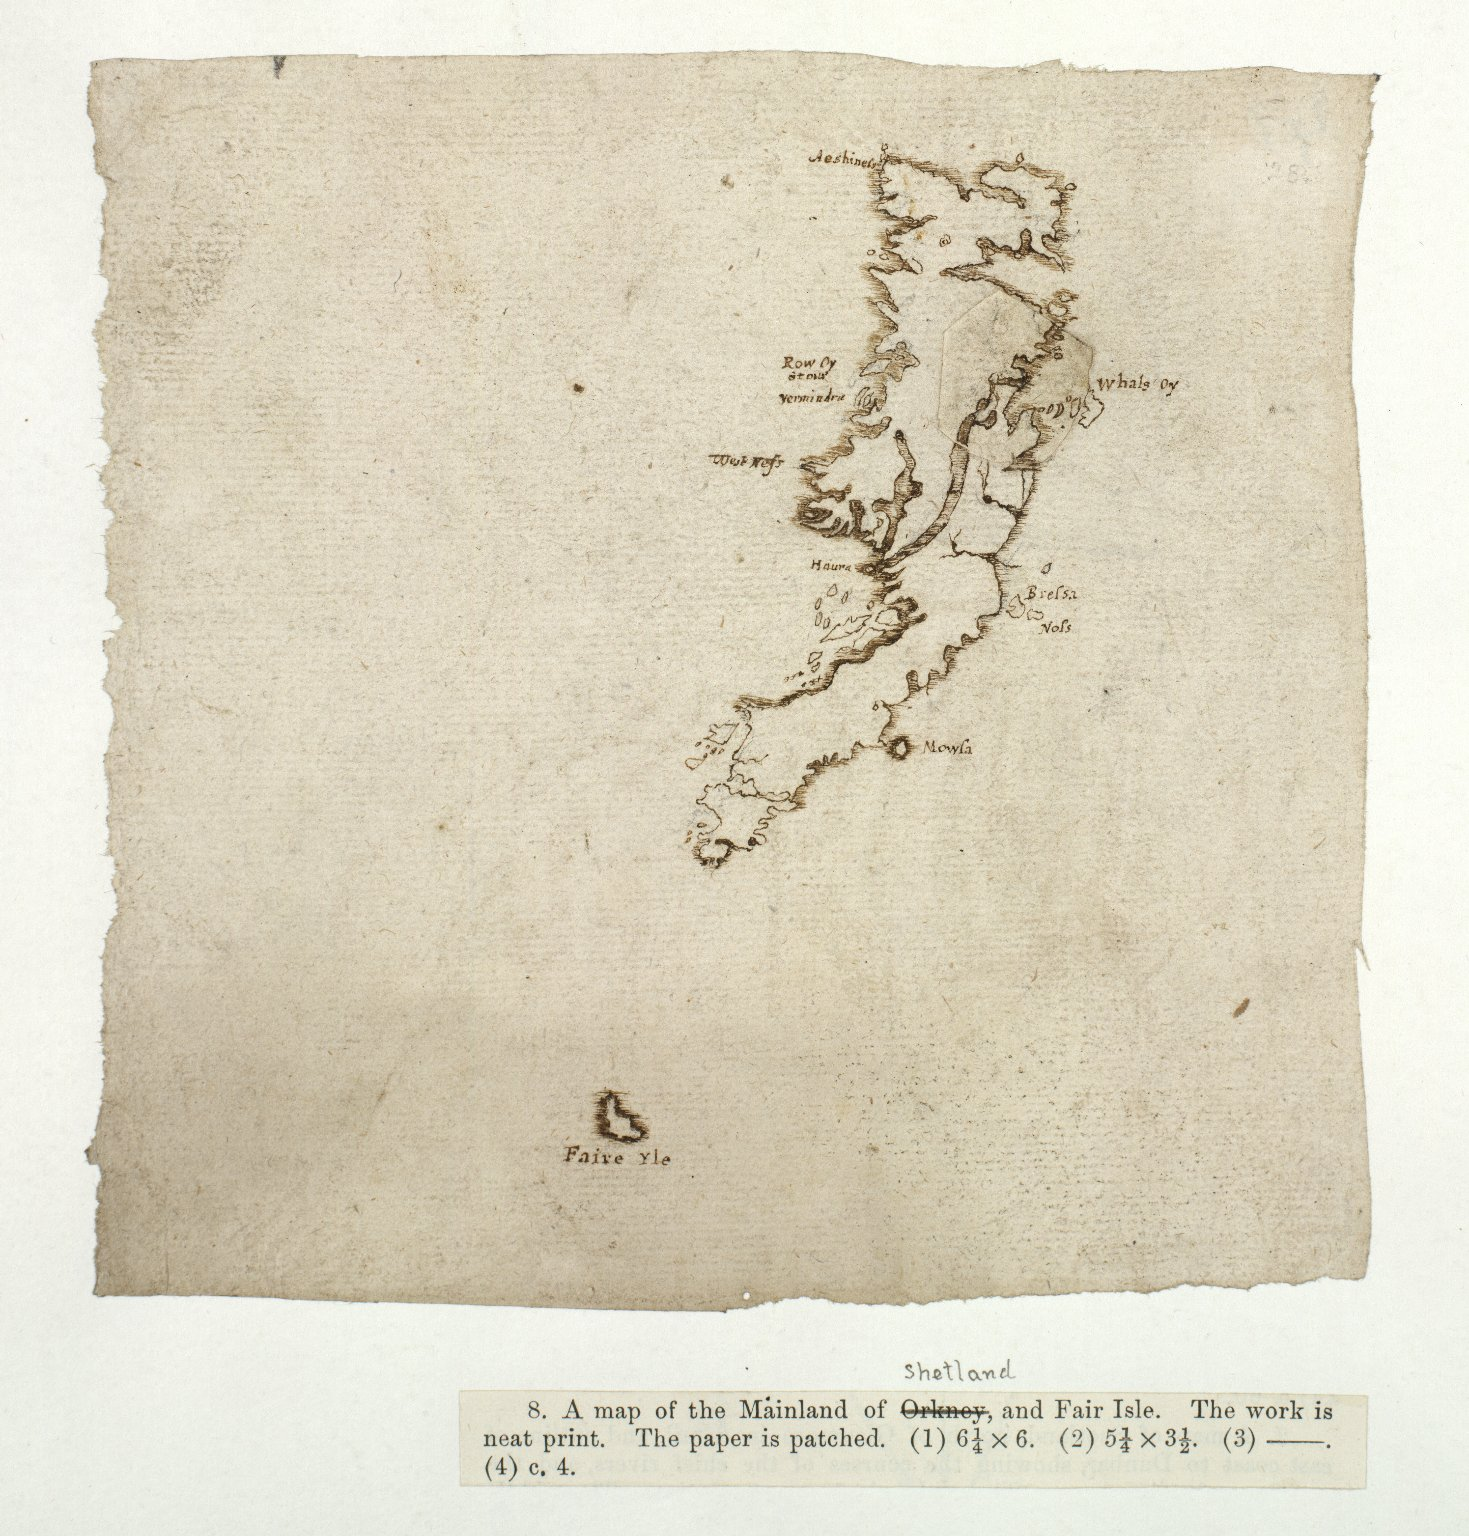 [A map of the Mainland of Shetland, and Fair Isle] [1 of 1]